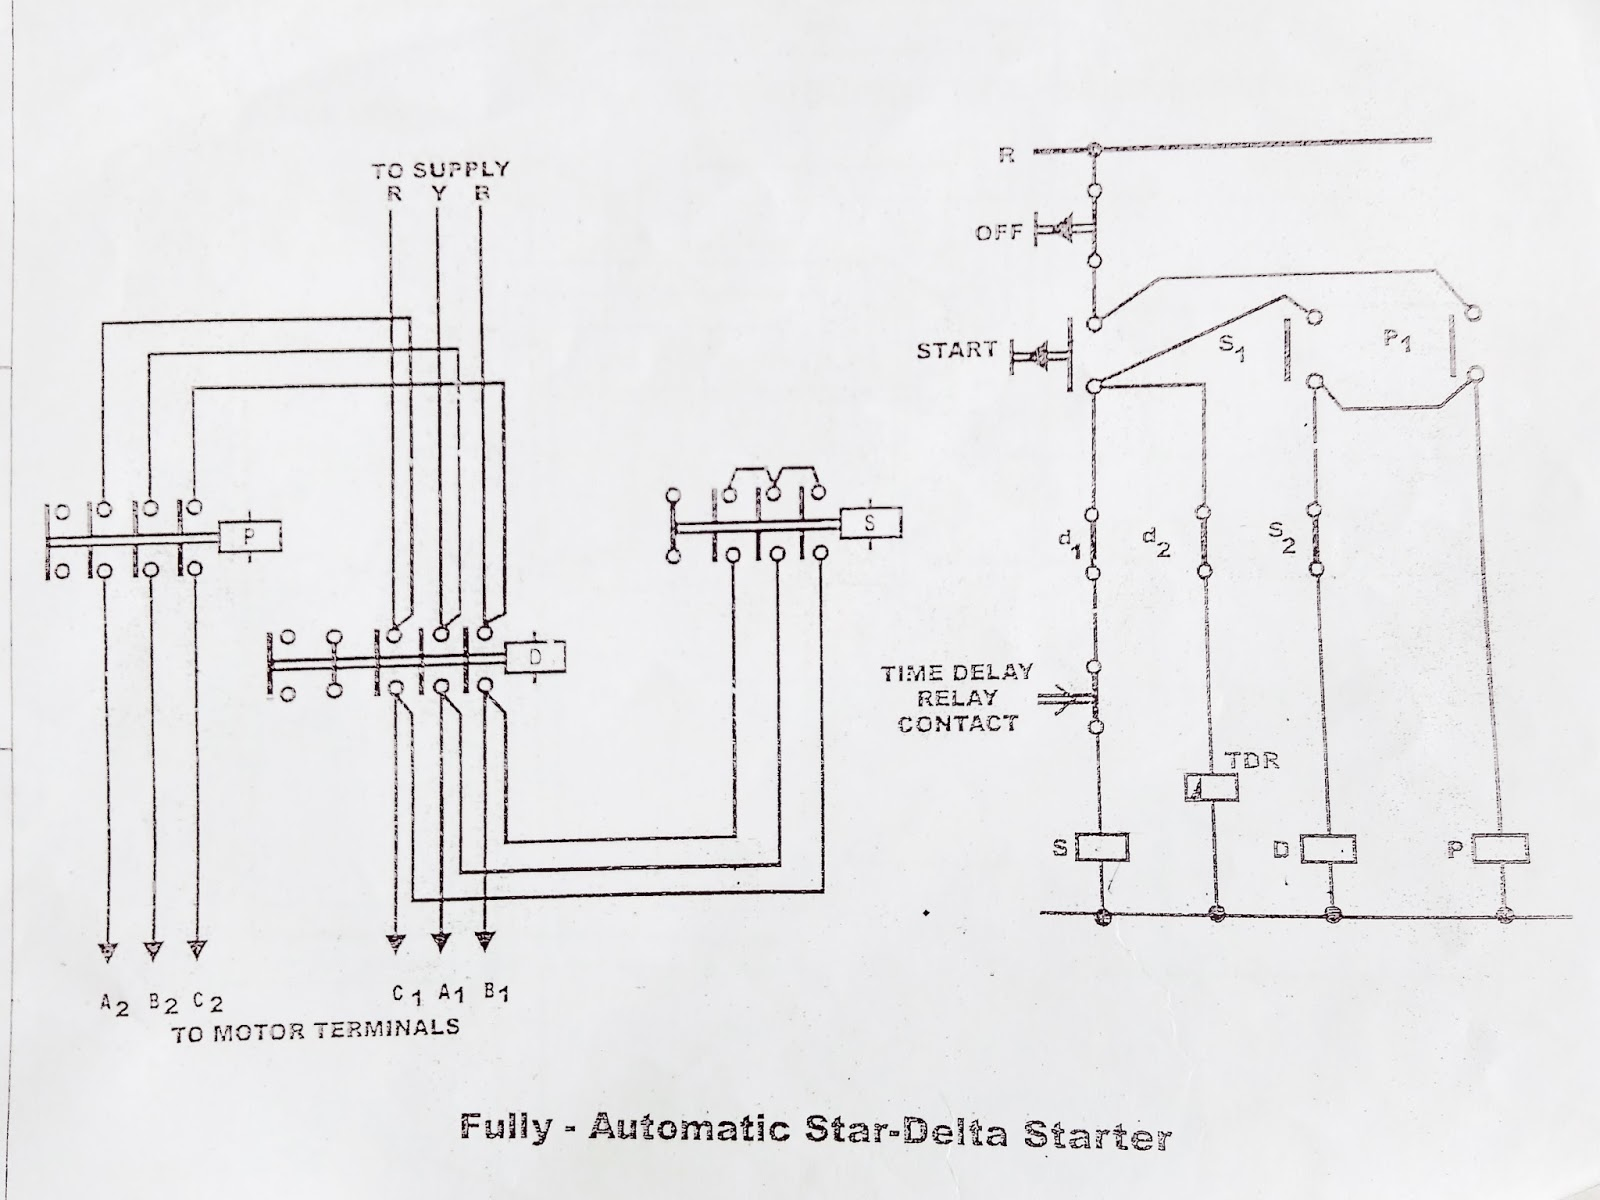 Automatic Star Delta Starter Control Circuit Diagram Pdf on star delta starter control wiring diagram with explanation